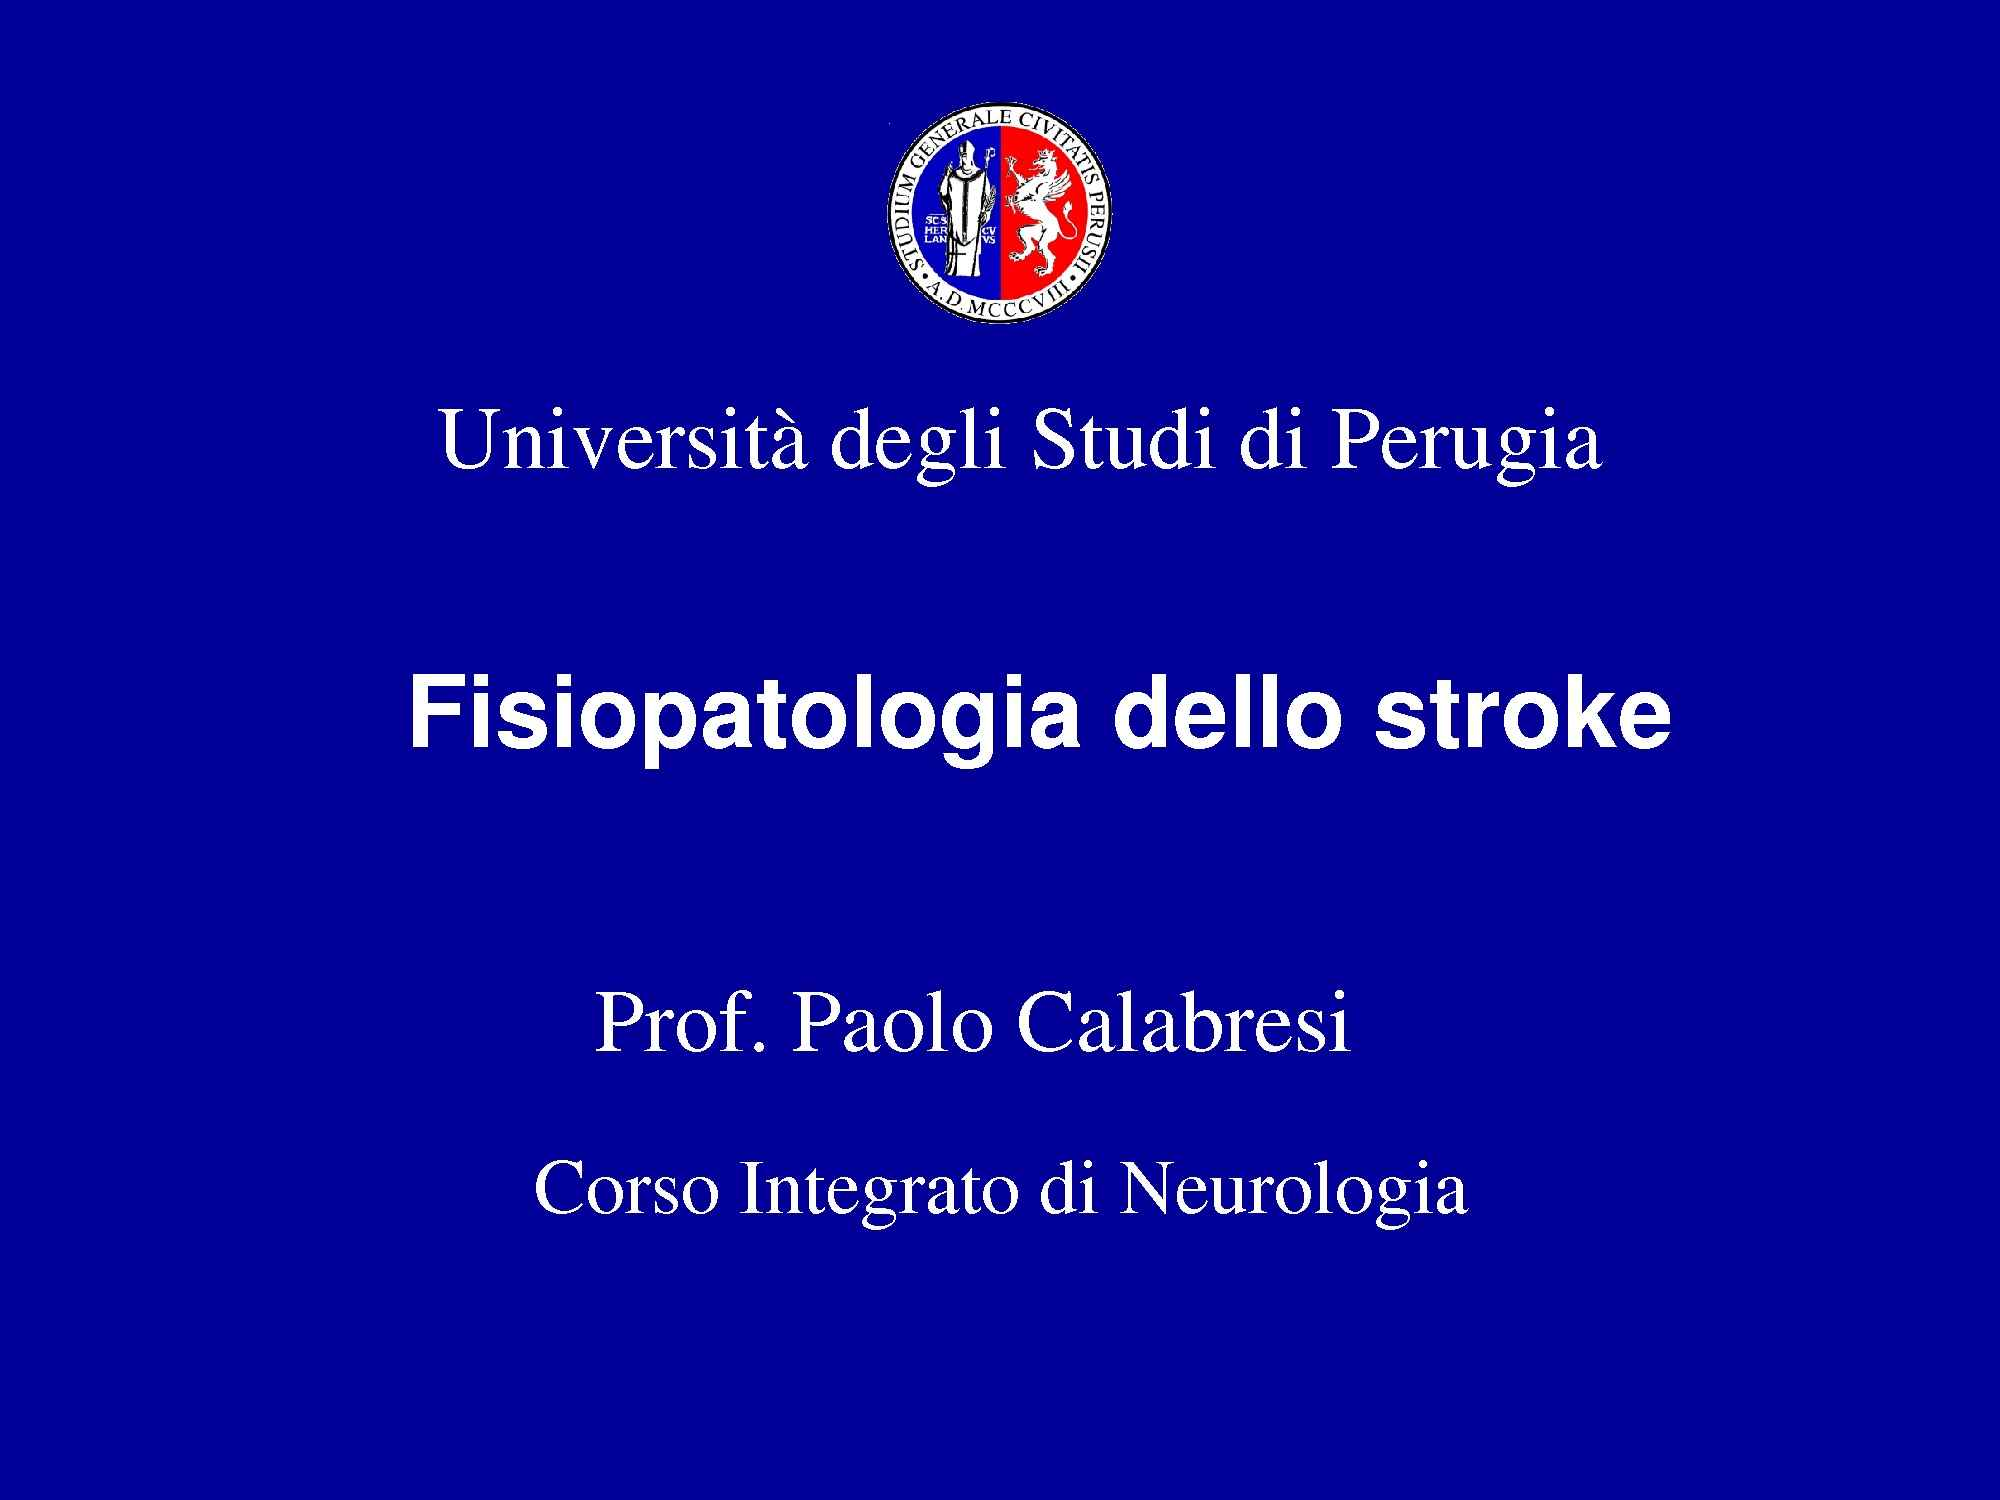 dispensa P. Calabresi Neurologia